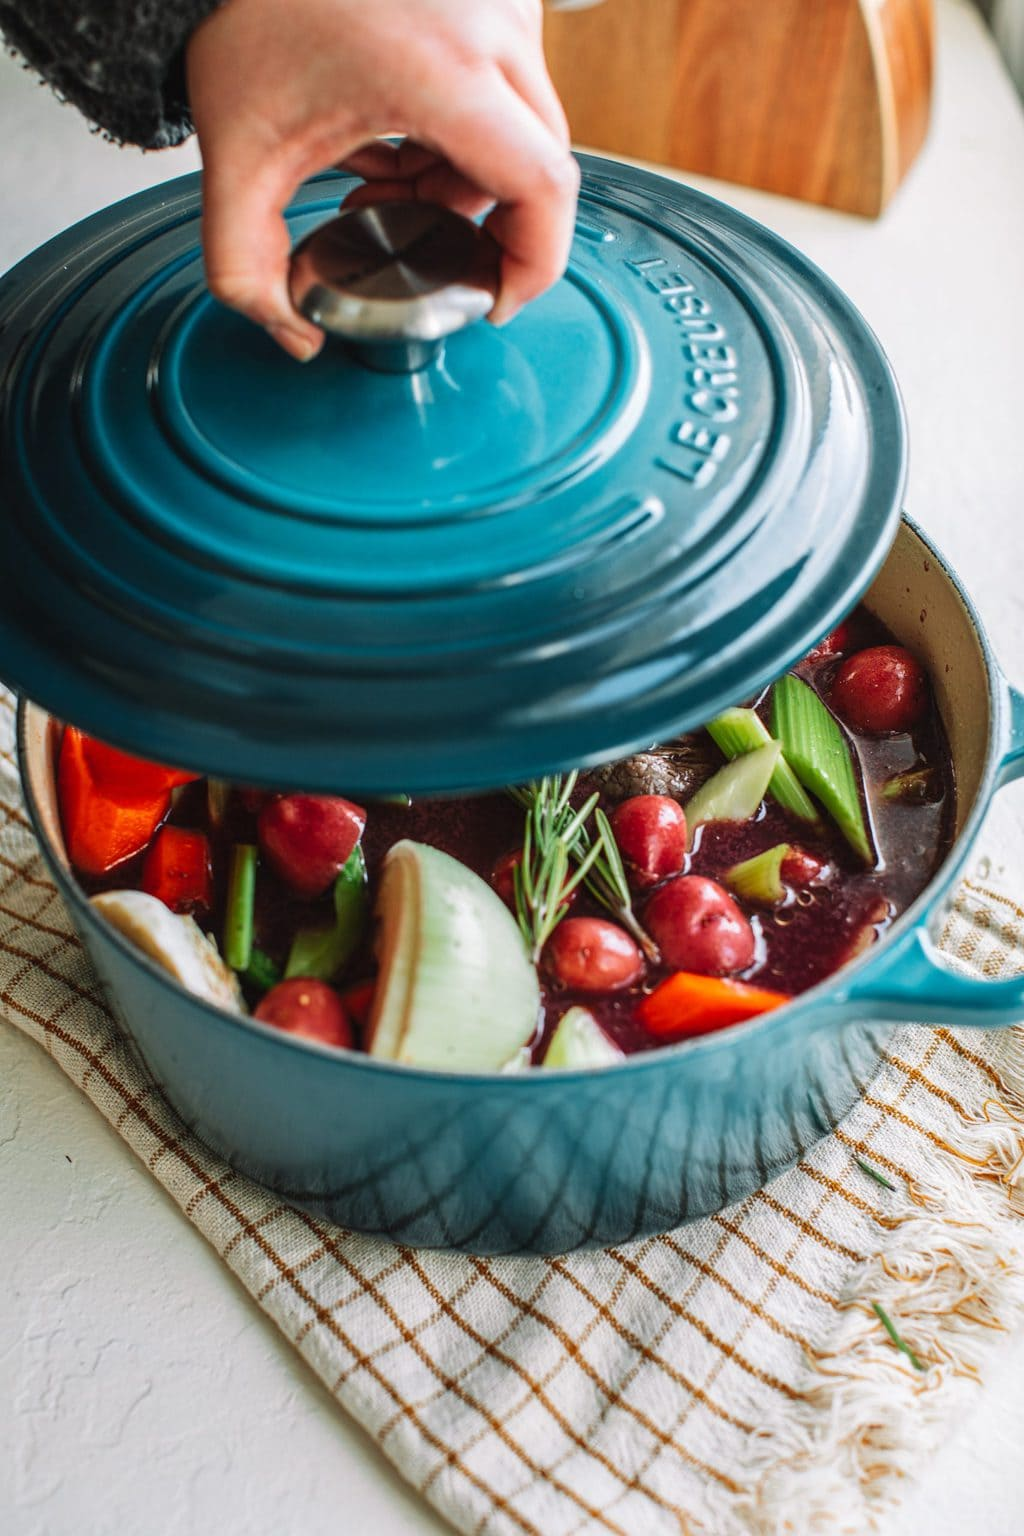 top shot of hand opening blue top to show pot roast and vegetables in light blue dutch oven